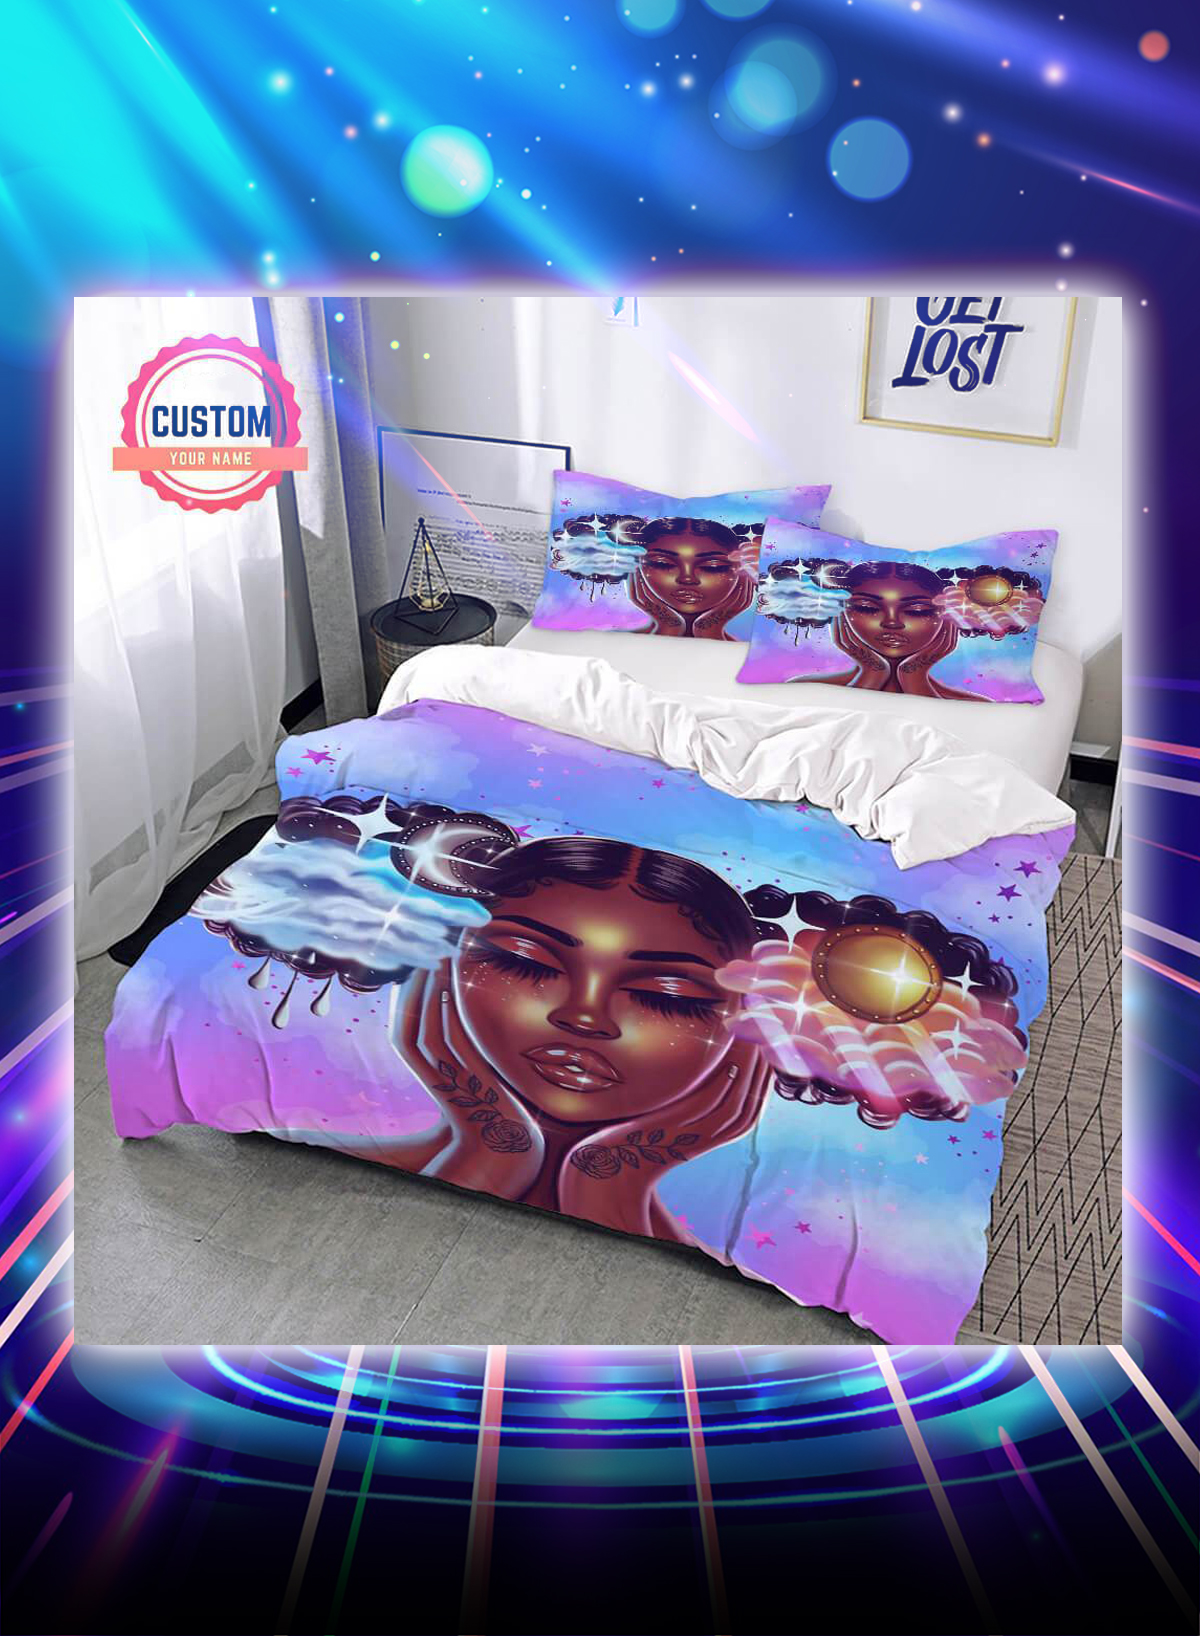 Sun and moon beautiful black girl personalized custom name bed set - Picture 1